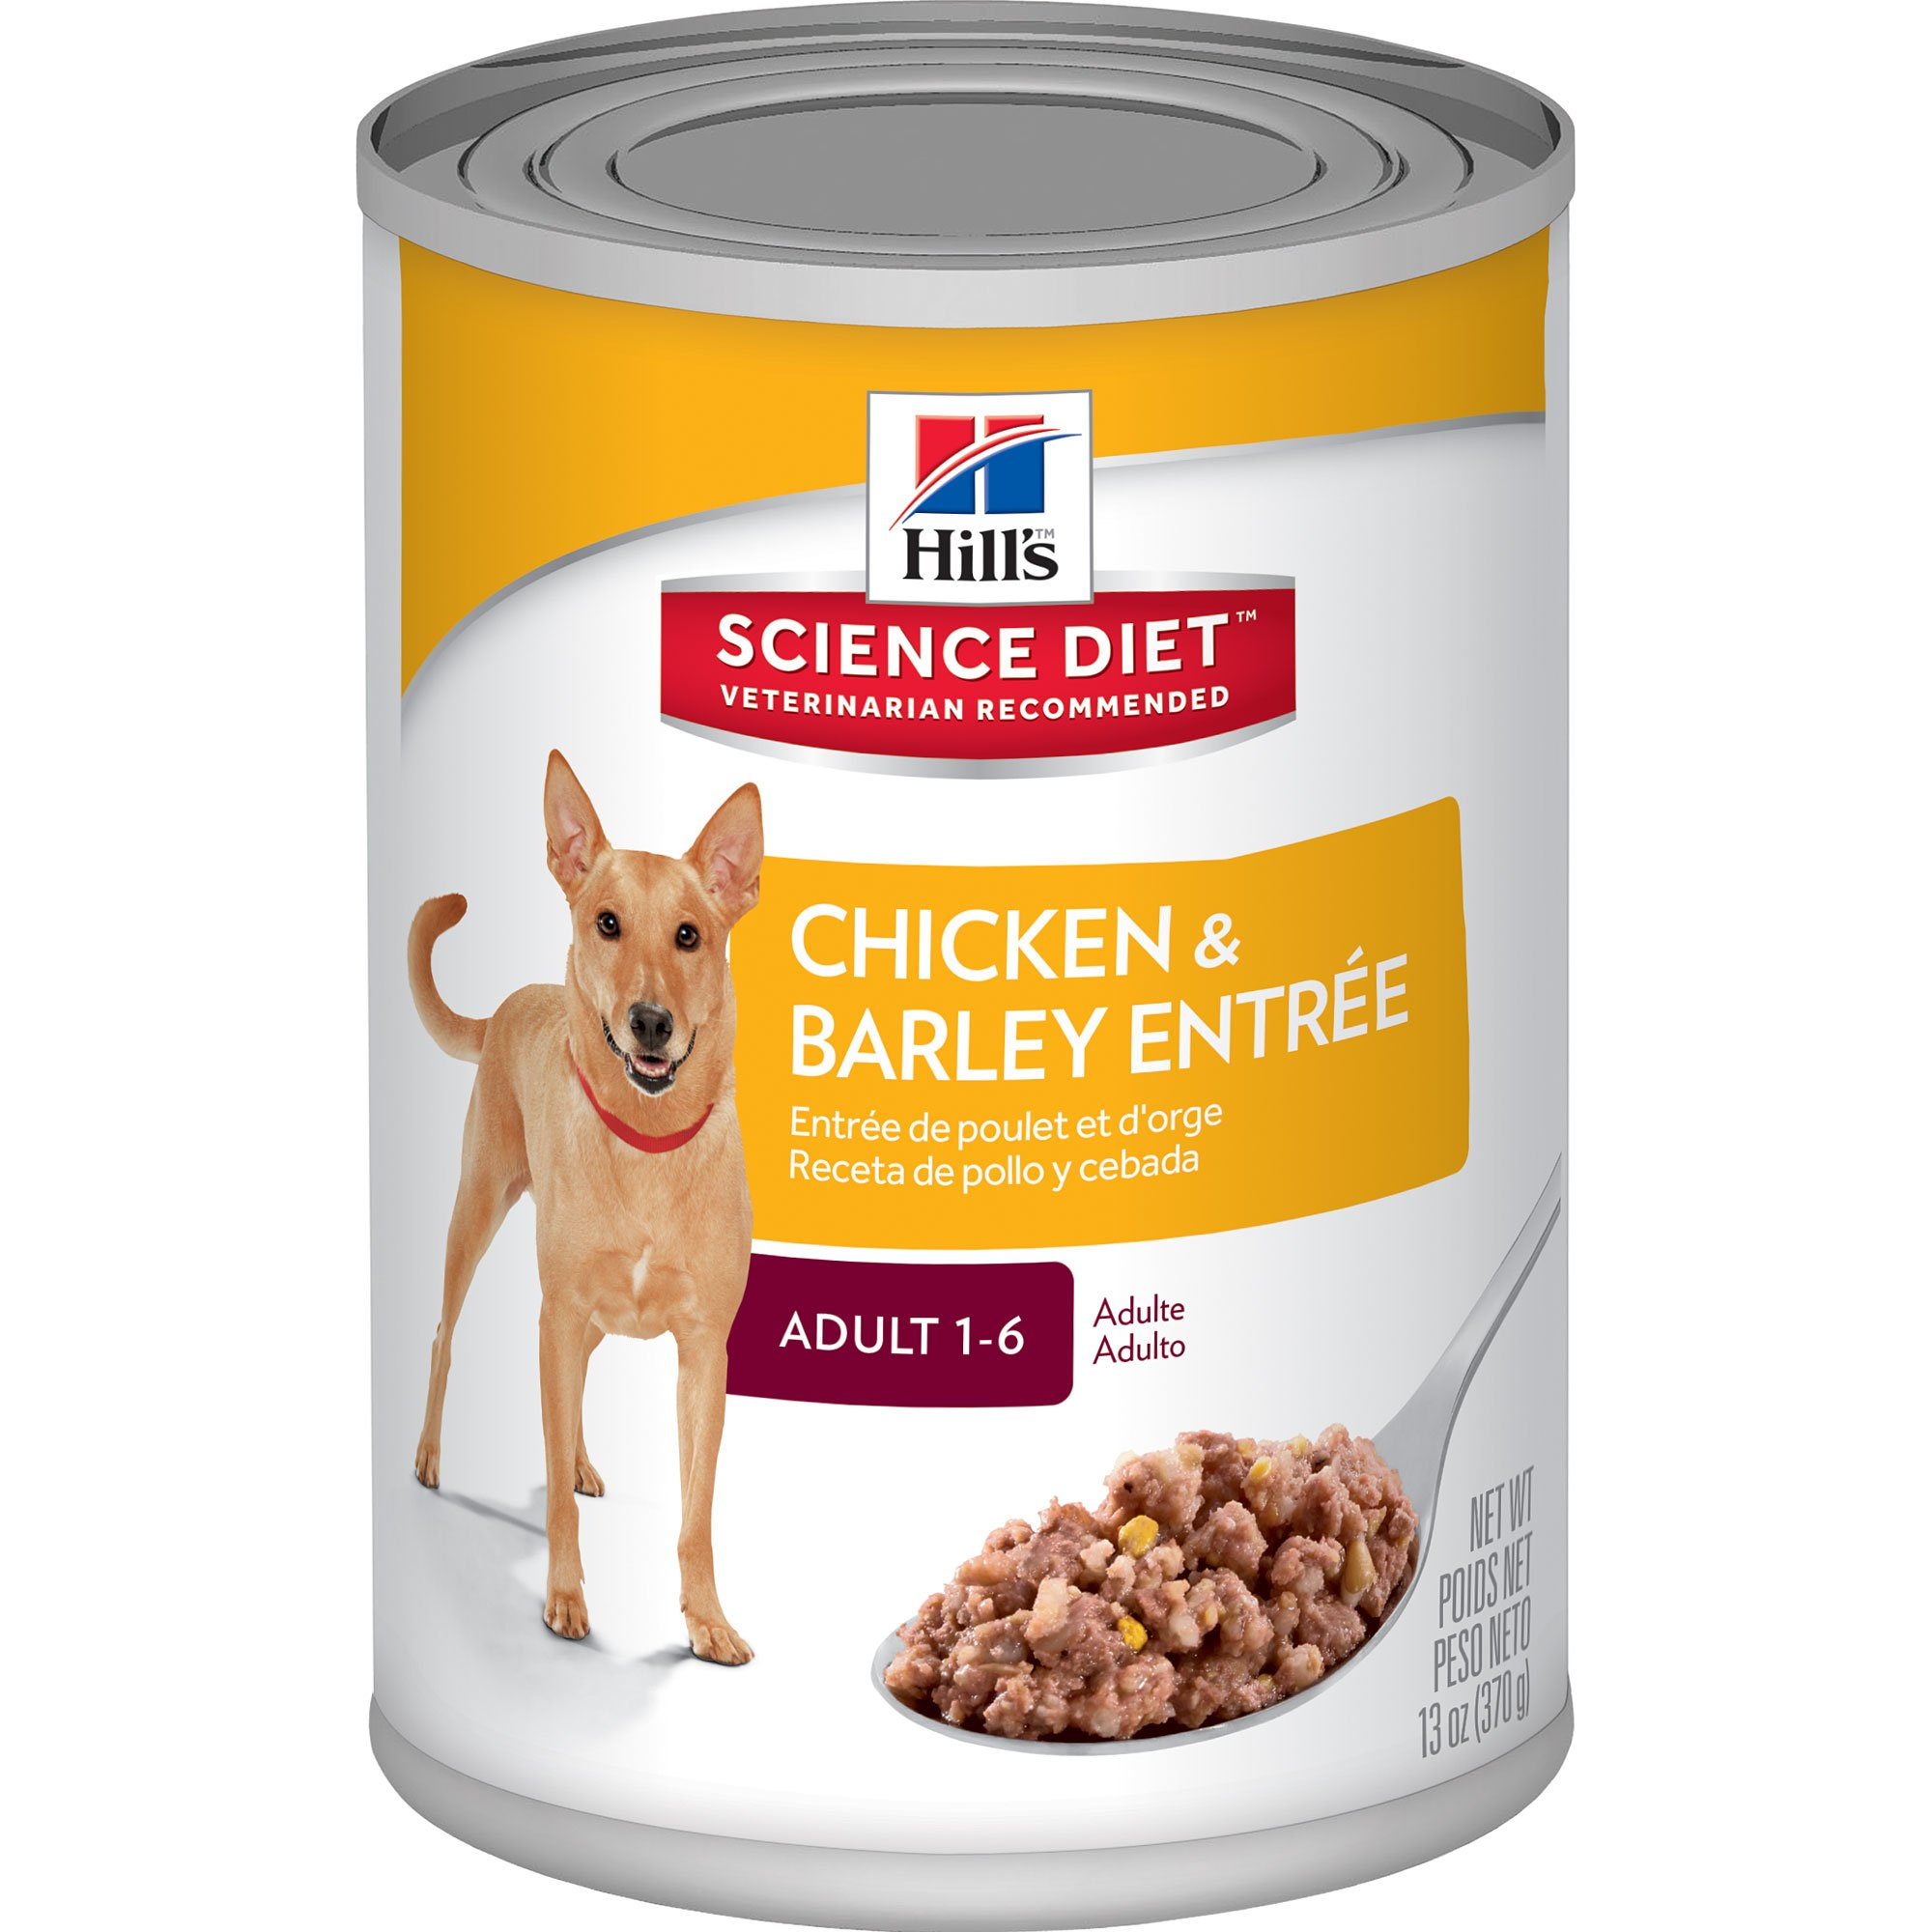 Hill's Science Diet Adult Savory Chicken Entree Canned Dog Food